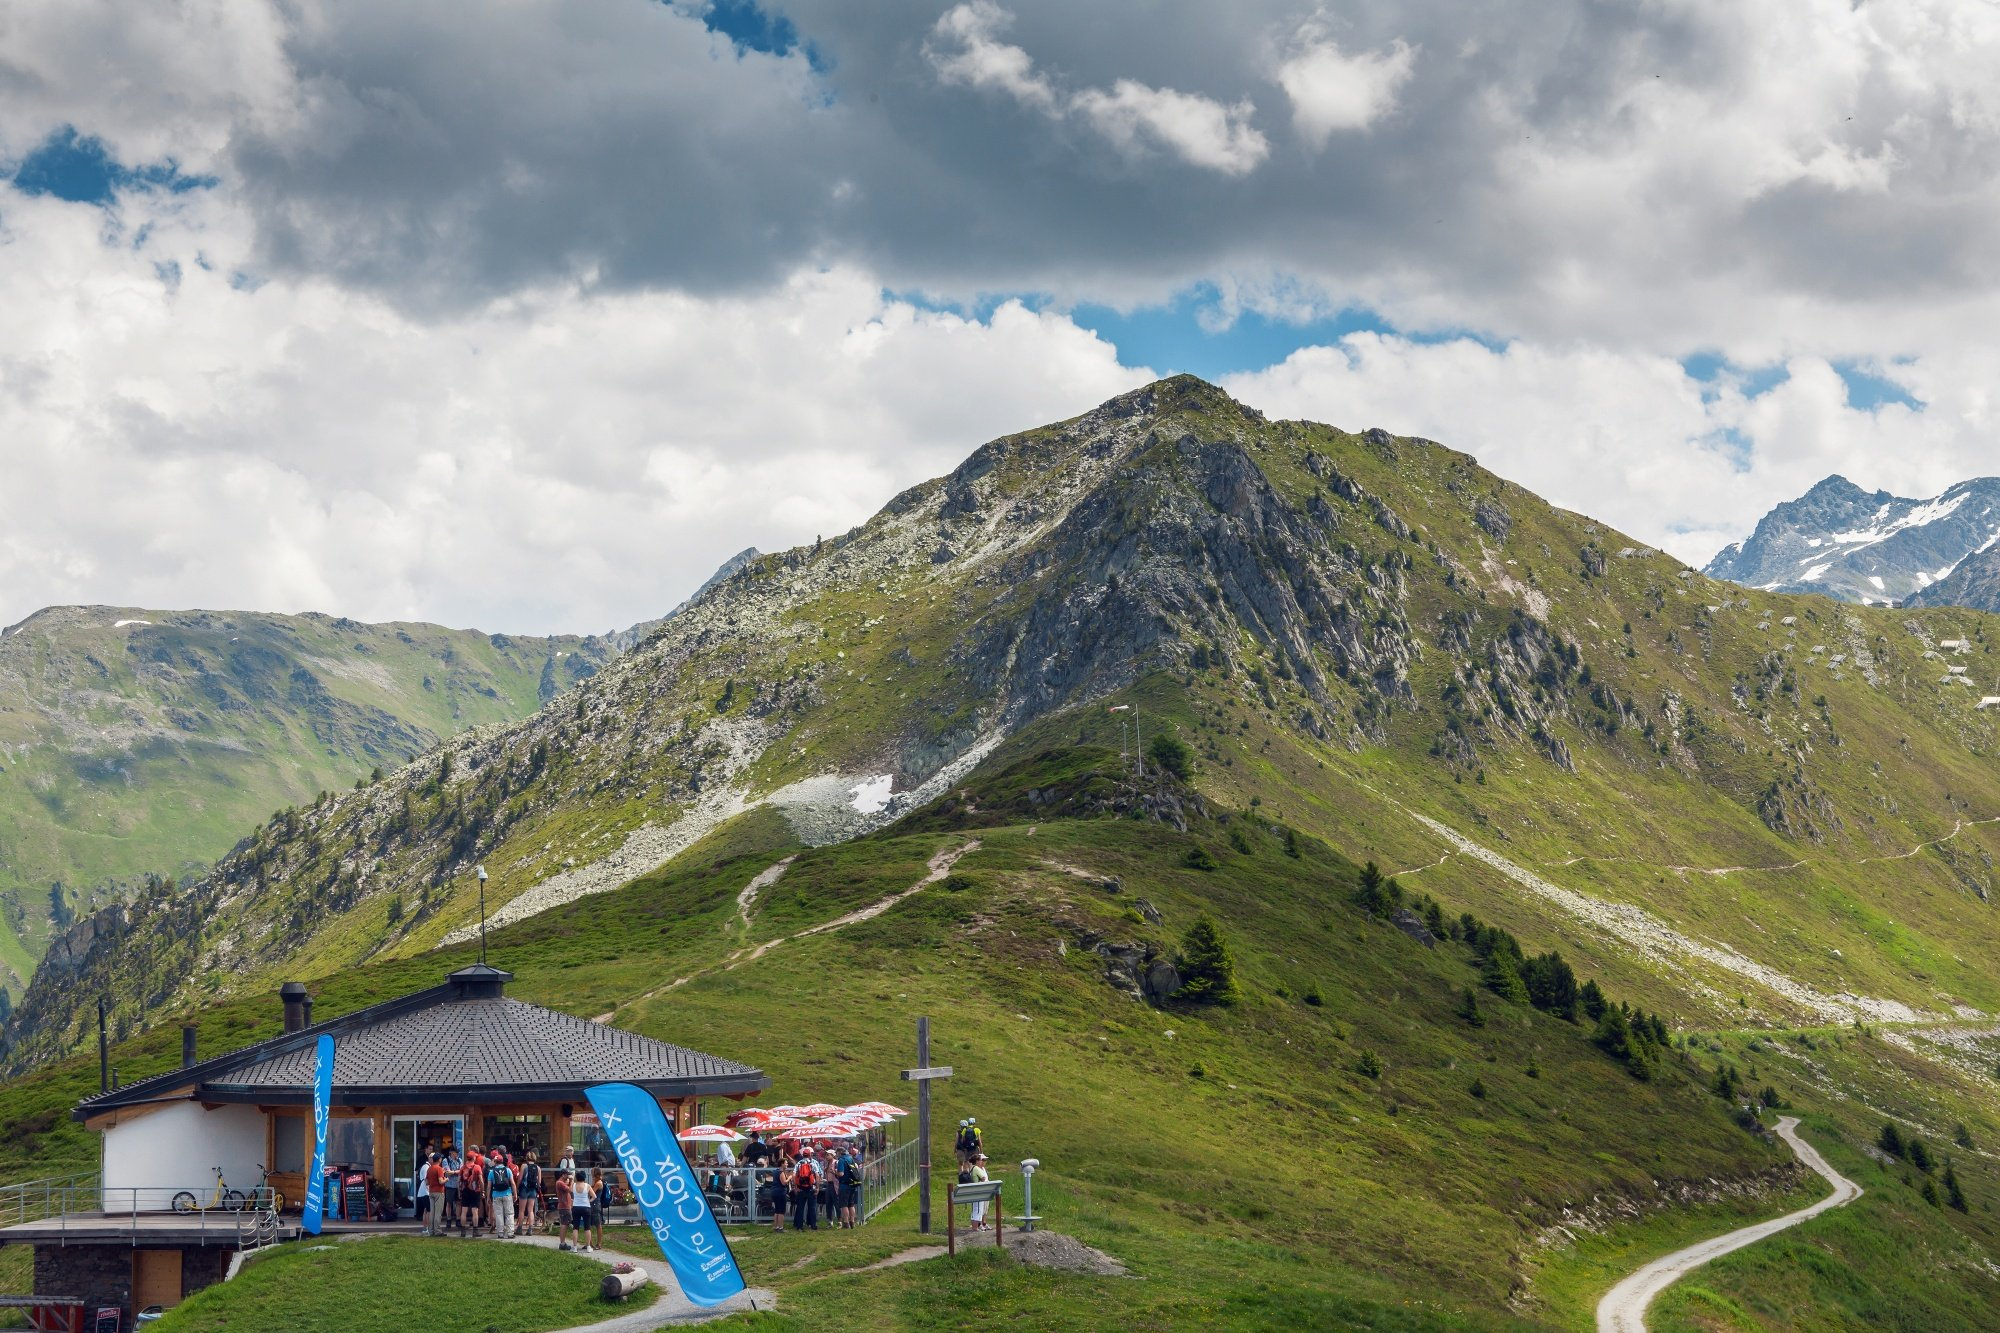 More than 21 kilometres separates Riddes from the summit of the Col de la Croix de Cœur. Passing through the mountain resort of La Tzoumaz, you reach the summit of the climb at more than 2,100 metres of altitude where you can admire the view of the resort of Verbier below.